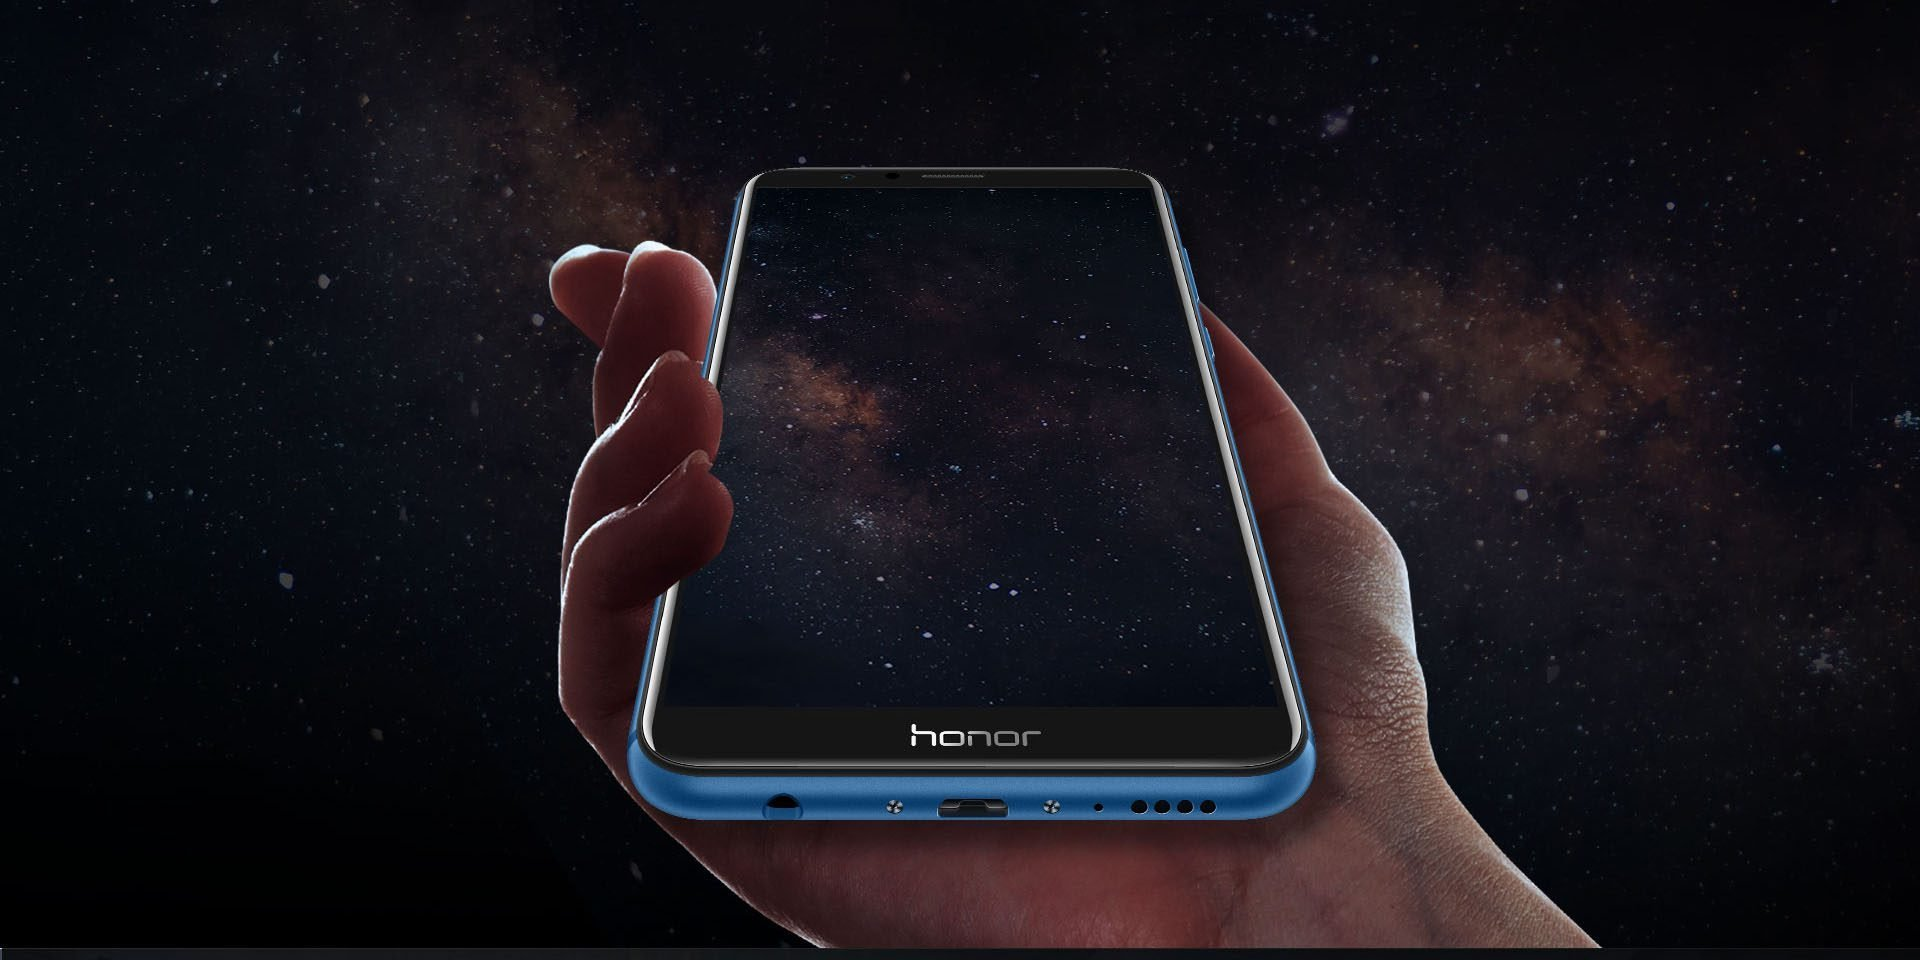 Le Honor 7X arrive en France : nouveau format 18:9, mais vieille connectique